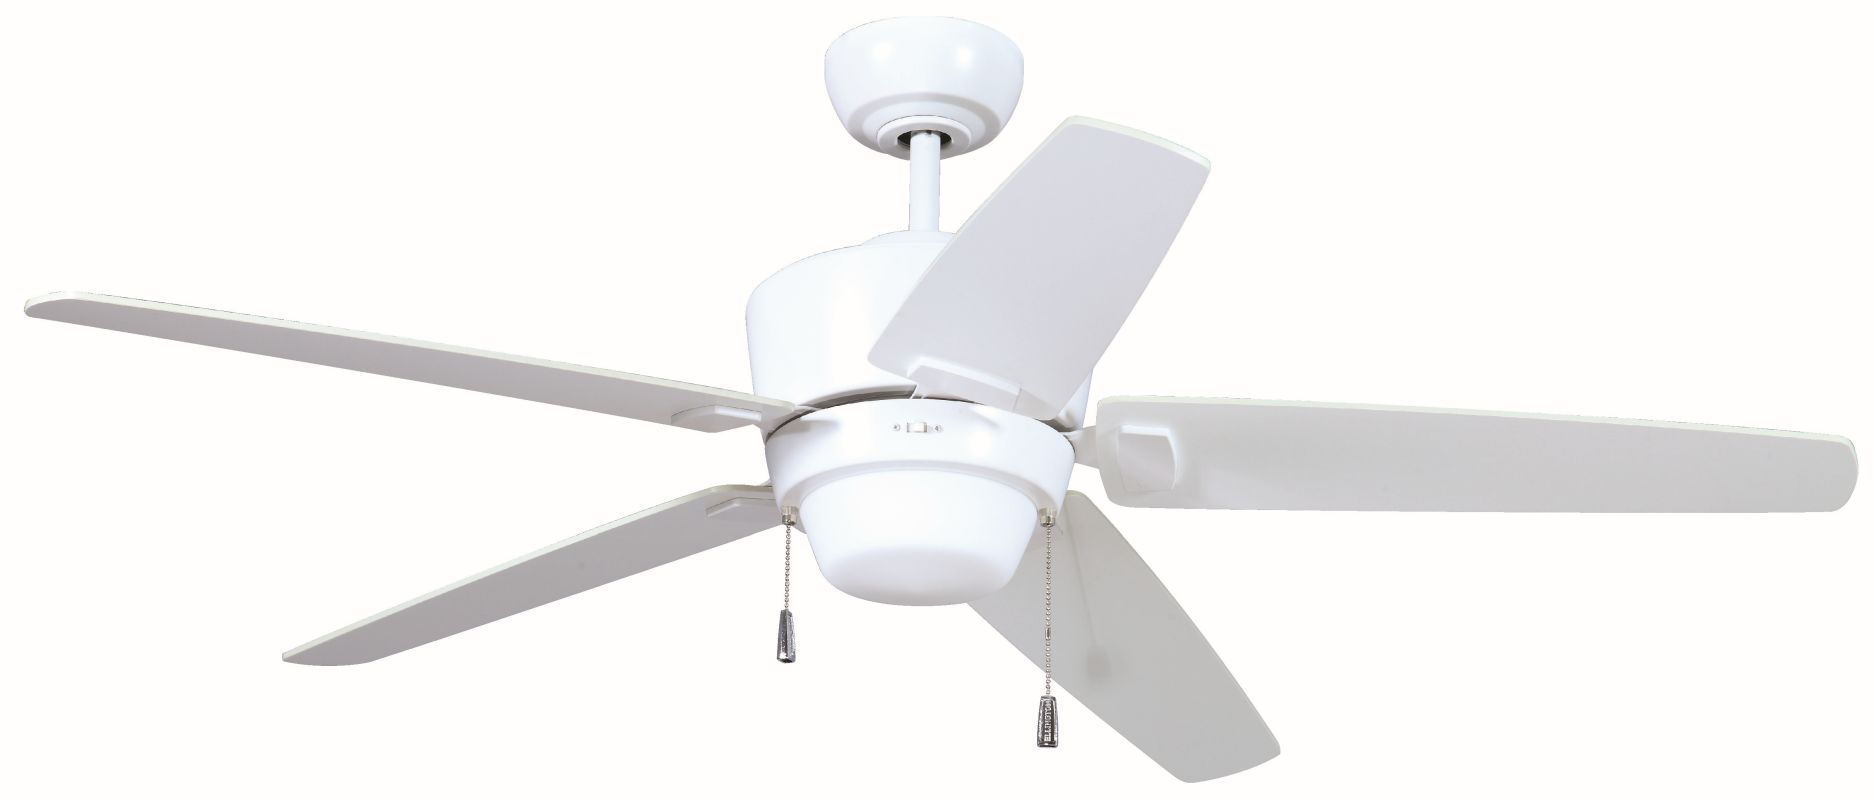 "Craftmade ATA525 Atara 52"" 5 Blade Indoor Ceiling Fan - Blades and"